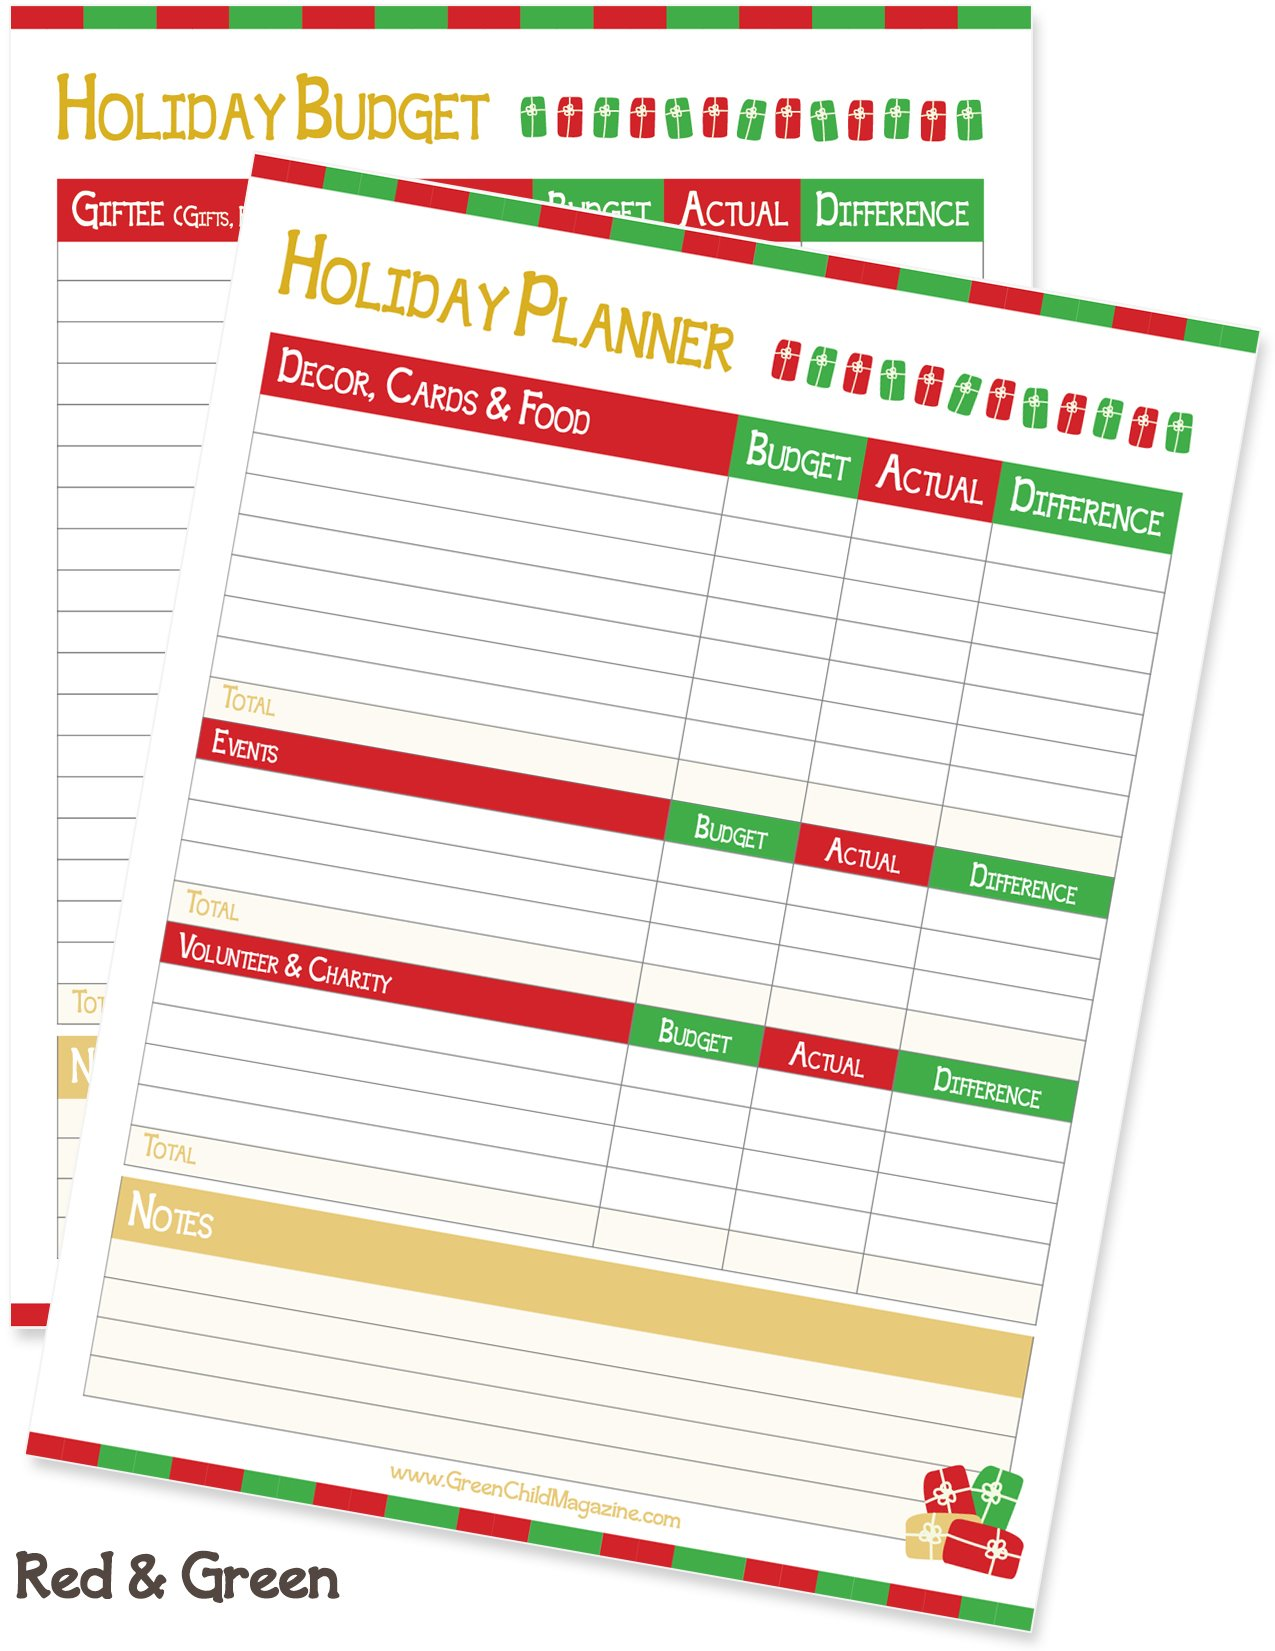 Holiday Budget Red Green